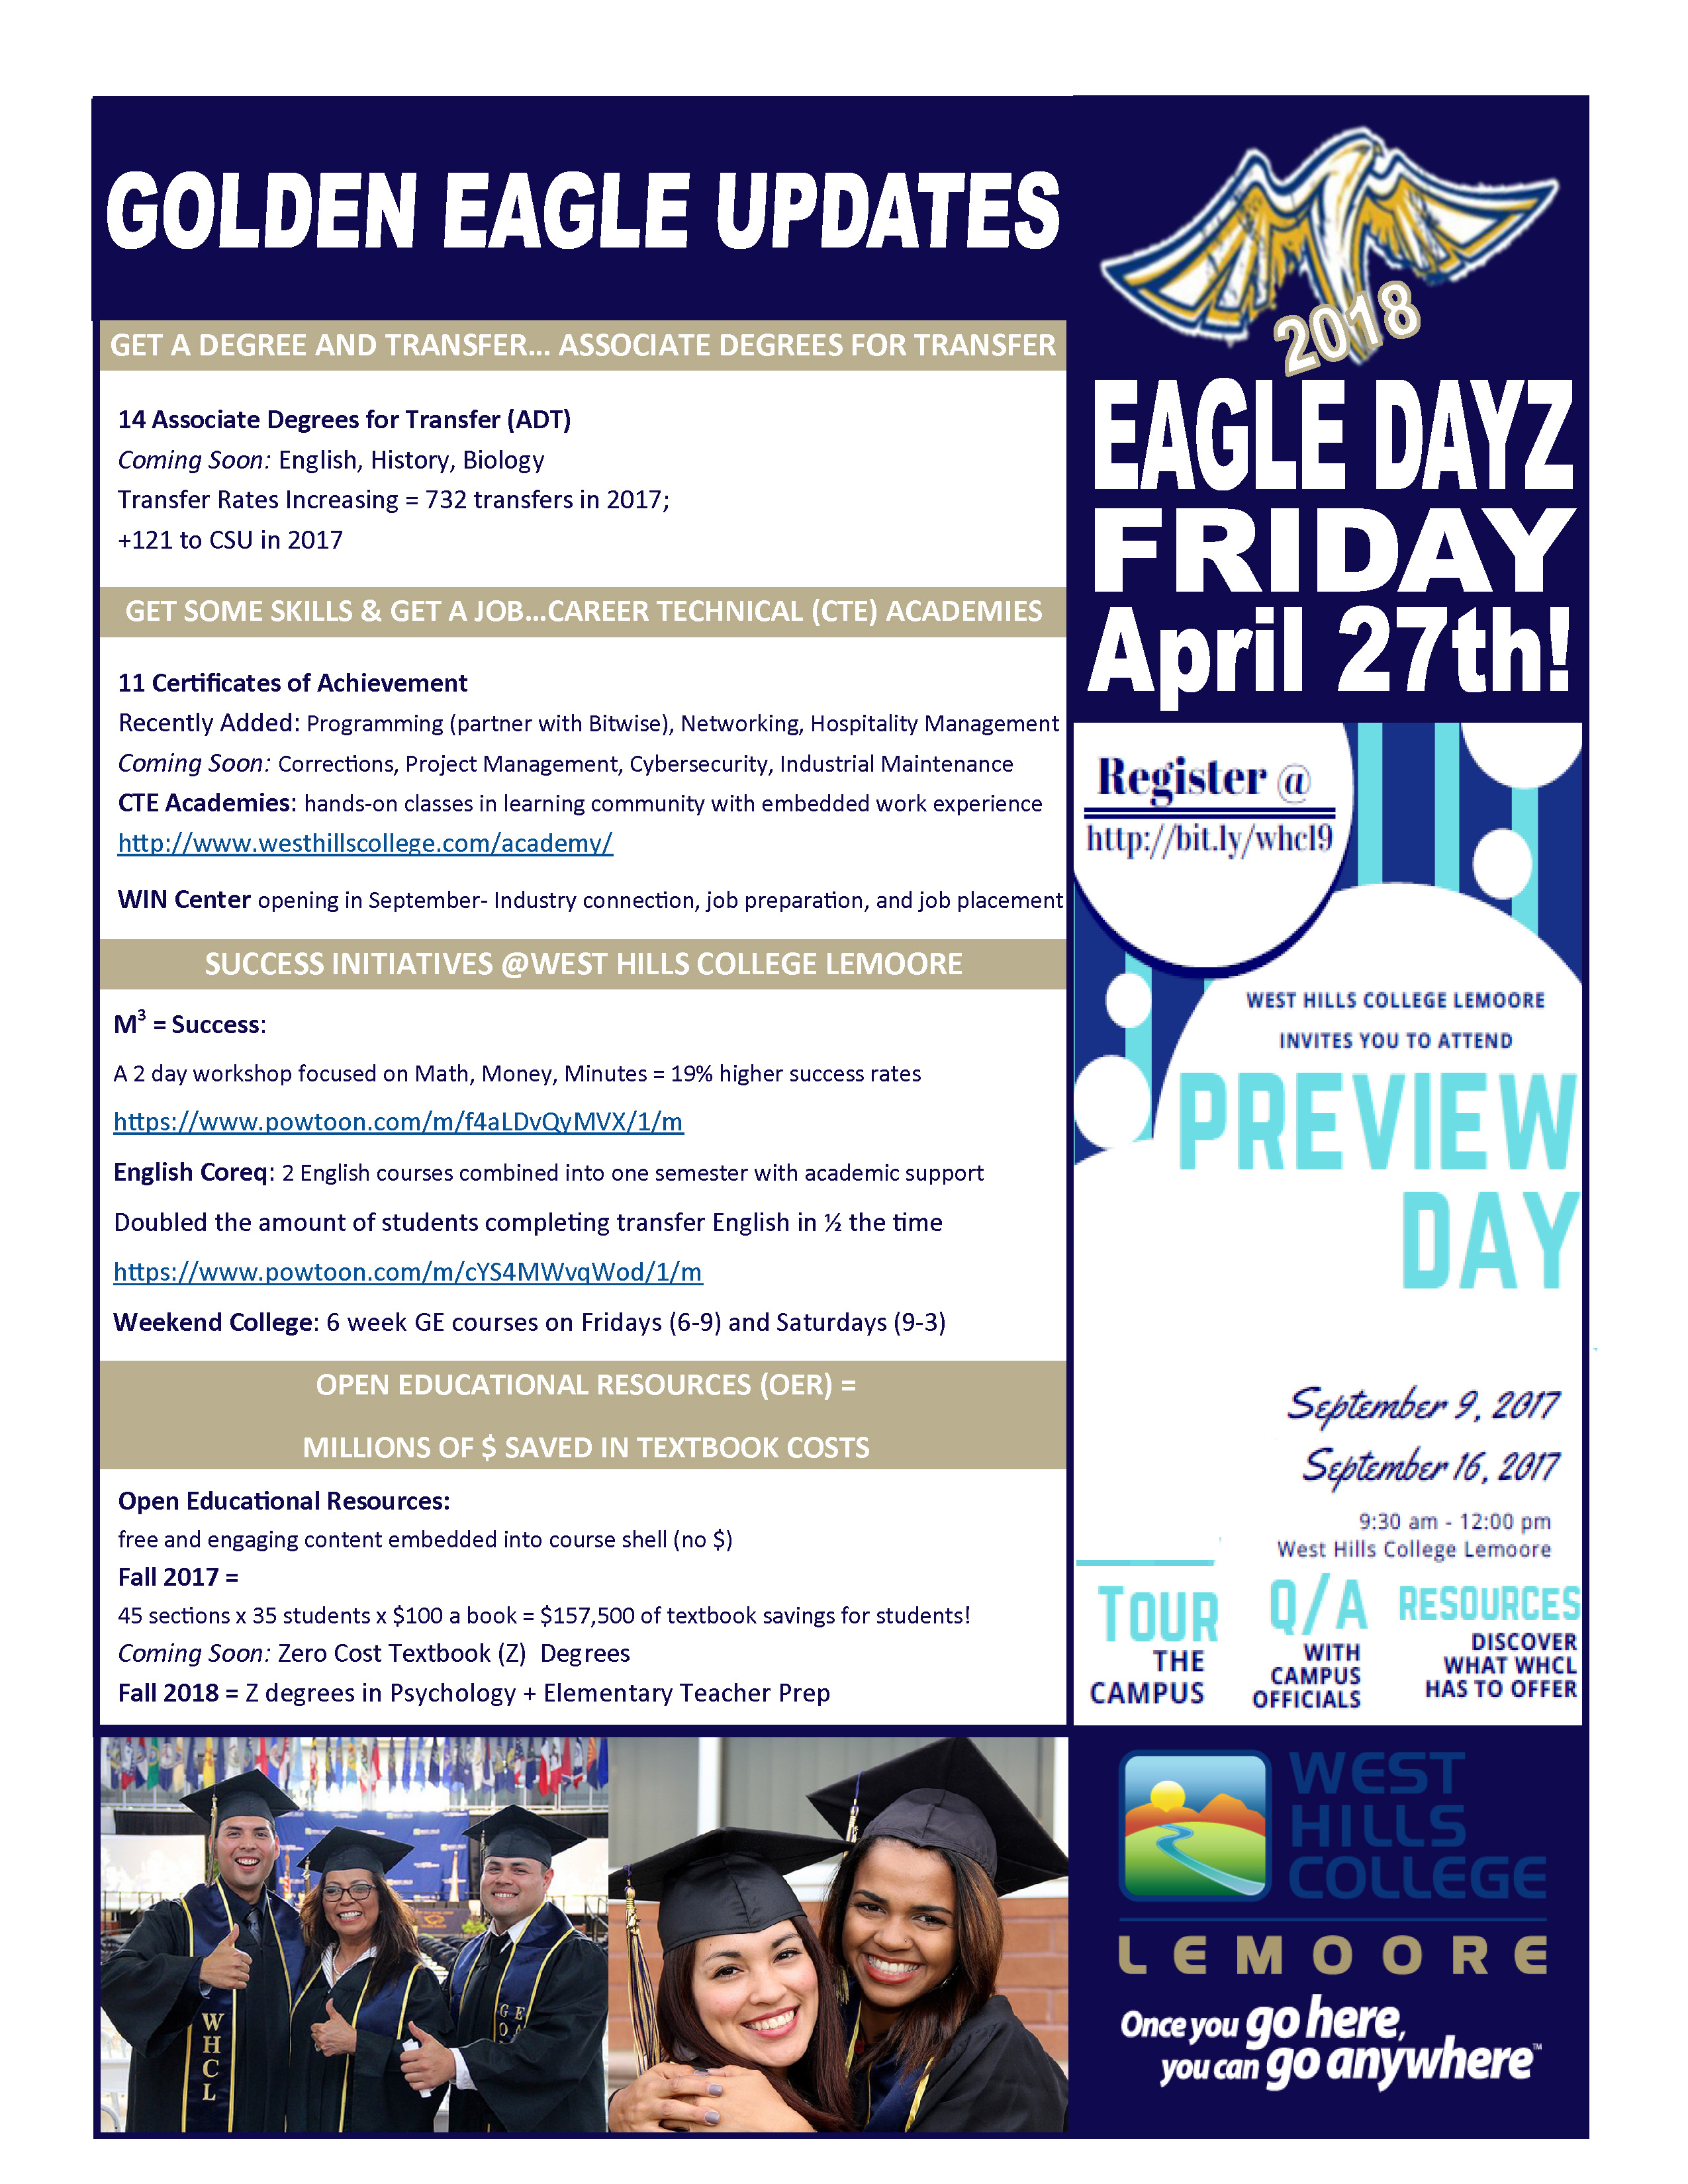 WHCL Golden Eagle Updates for HS Visits -fall 2017.jpg